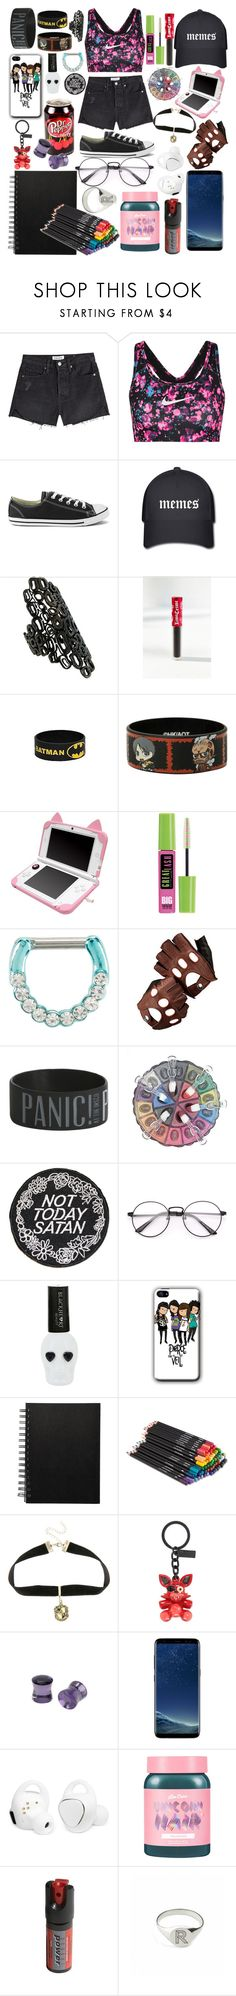 """Untitled #57"" by anamariarox ❤ liked on Polyvore featuring Frame, NIKE, Converse, Repossi, Lime Crime, Hot Topic, Maybelline, Aspinal of London, Rupaul and Warner Bros."